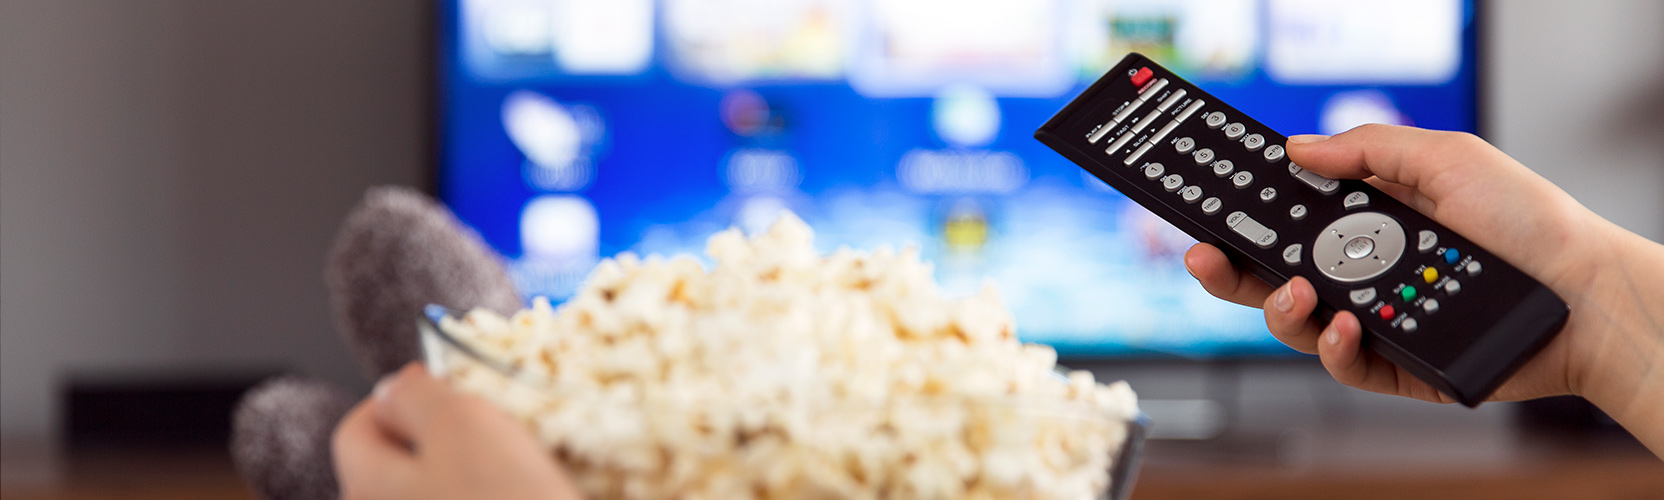 Digital video recorder pointed at a television with a bowl of popcorn